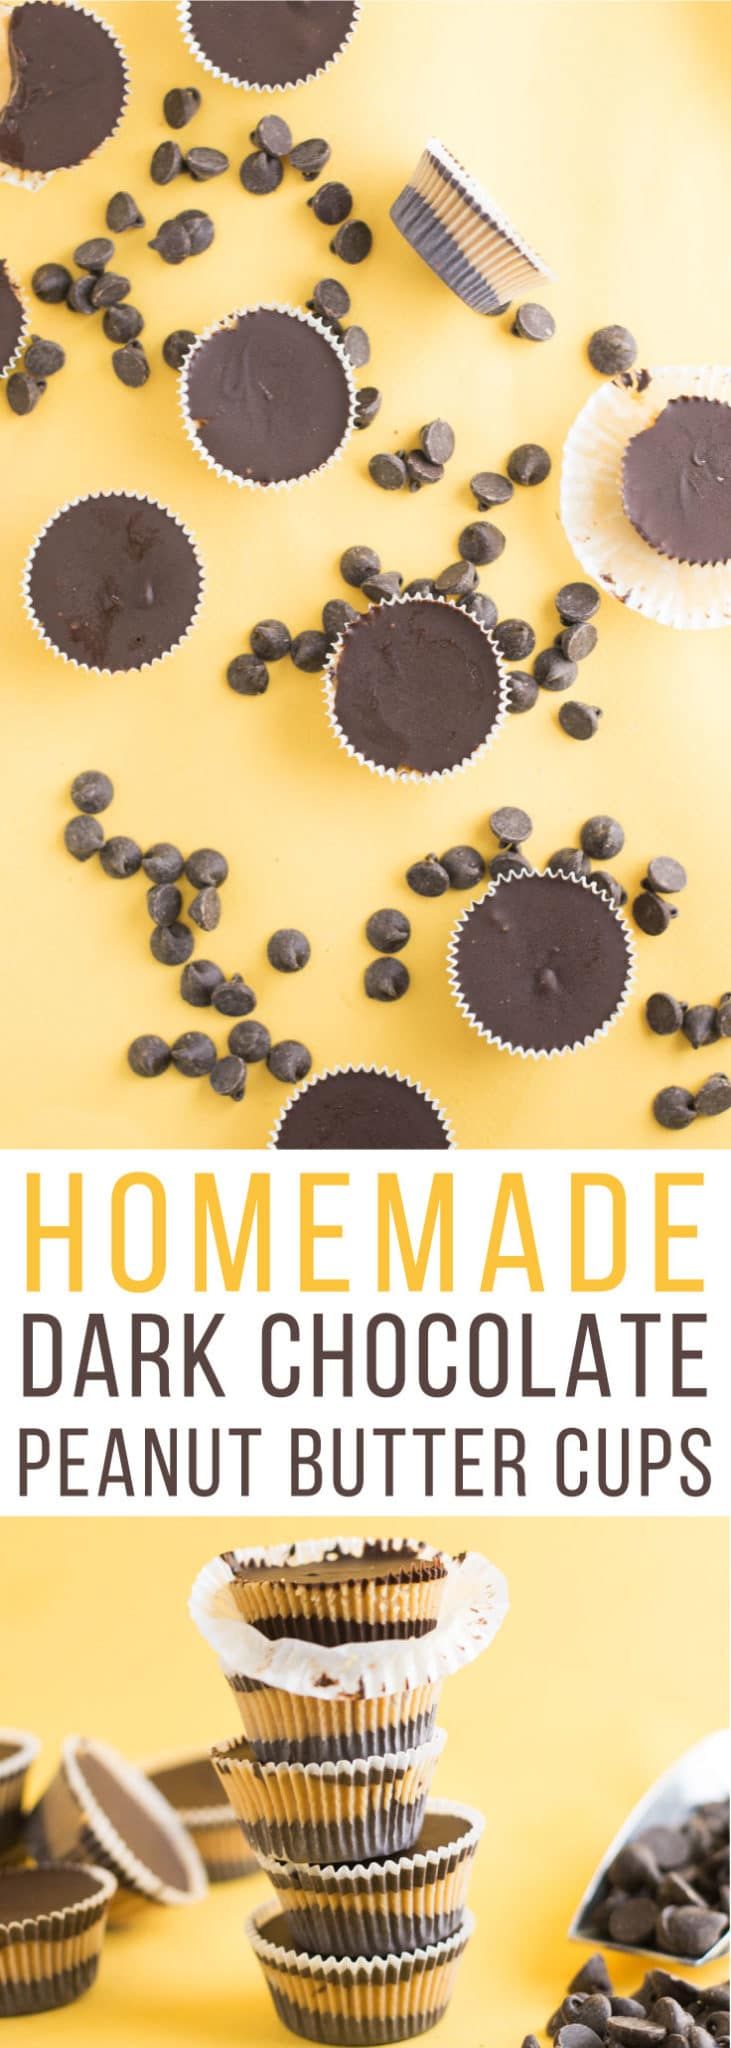 Dark Chocolate Peanut Butter Cups -- These vegan homemade Reese peanut butter cups are made with just a few simple ingredients. The classic combination of chocolate and peanut butter is delicious in this peanut butter cup recipe! | mindfulavocado